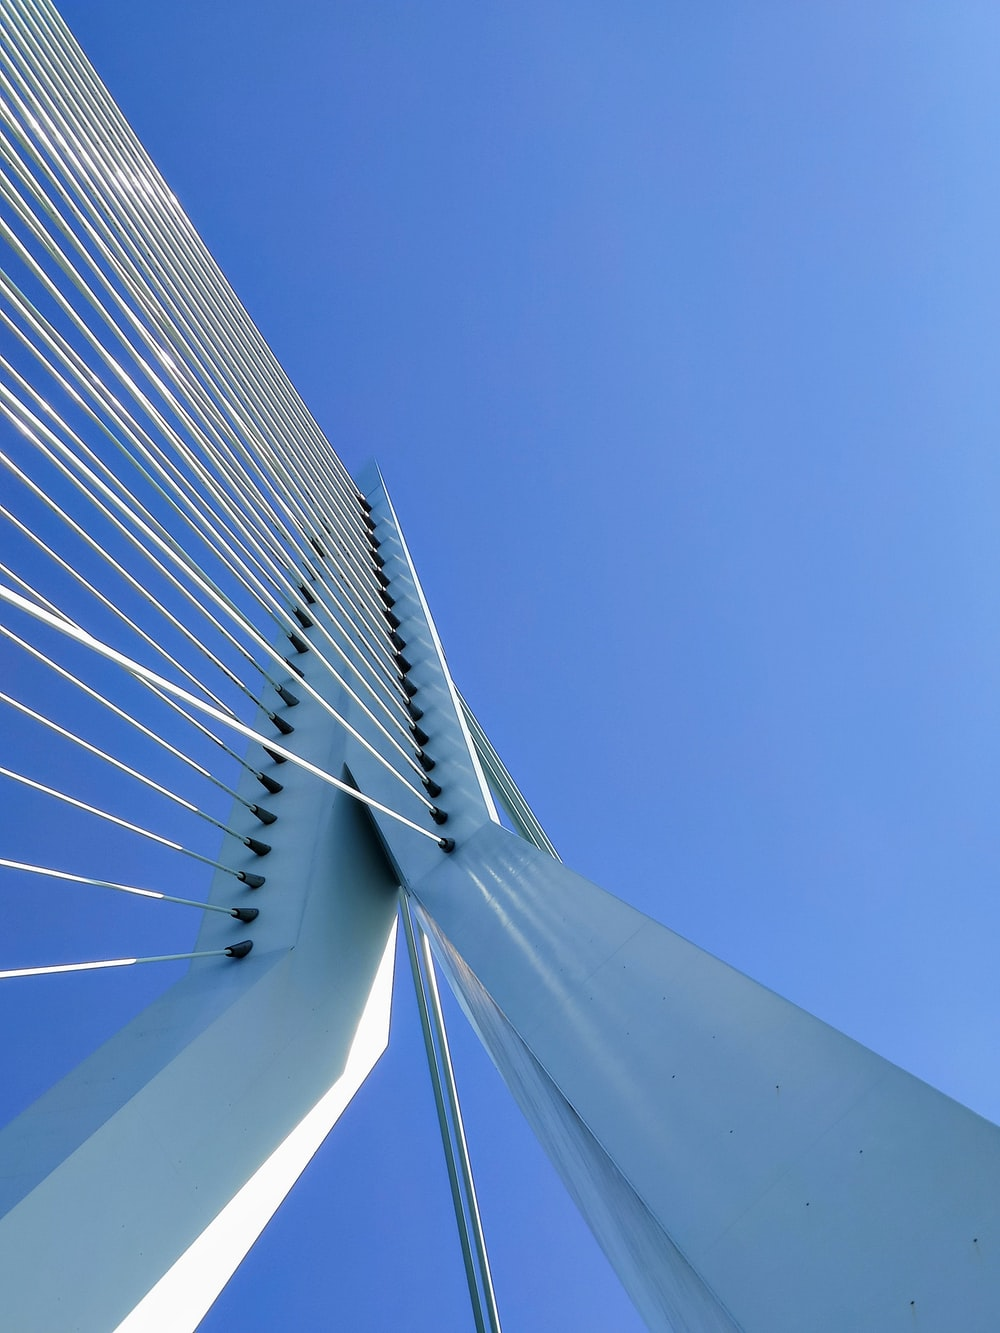 gray cable-stayed bridge during daytime